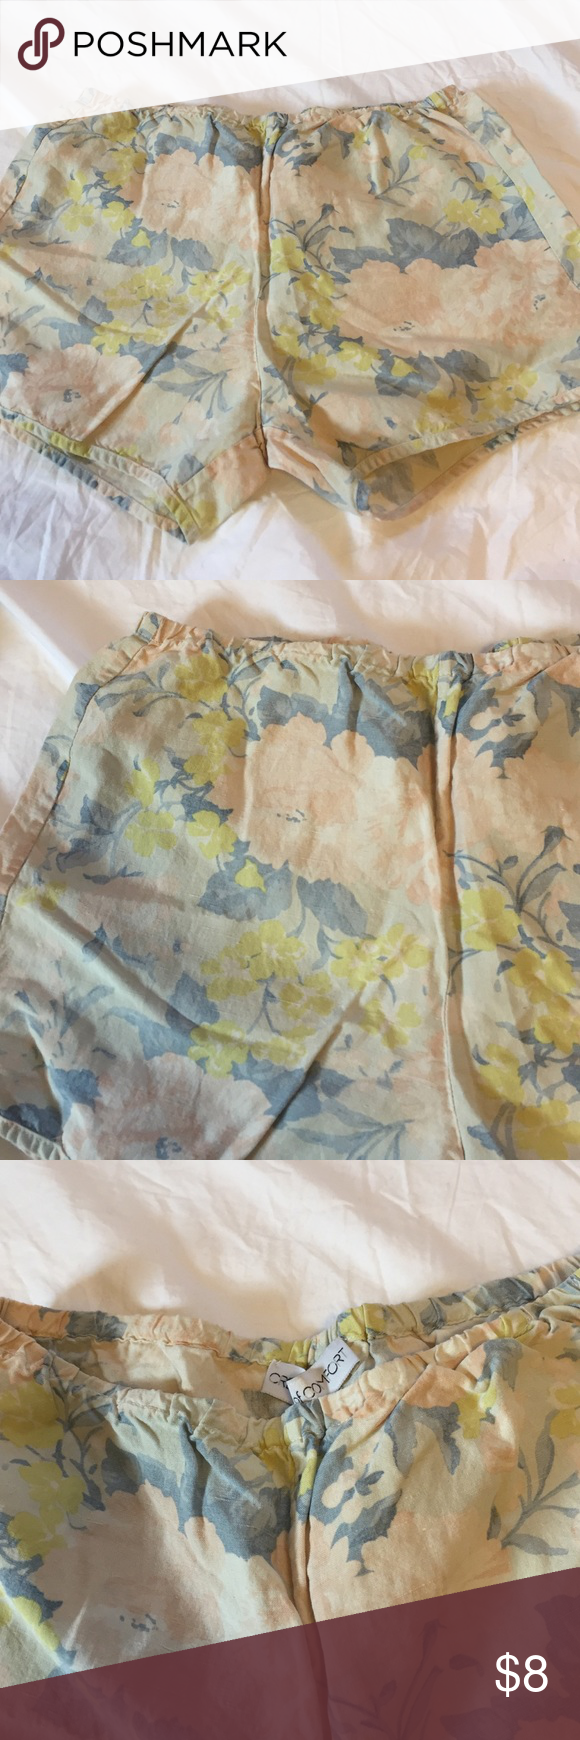 Comfy Elastic Waist Shorts Love the color on these floral flowy shorts. Elastic waist makes them even more comfy. Wear them as pjs or with sandals and a tank to the beach! Shorts